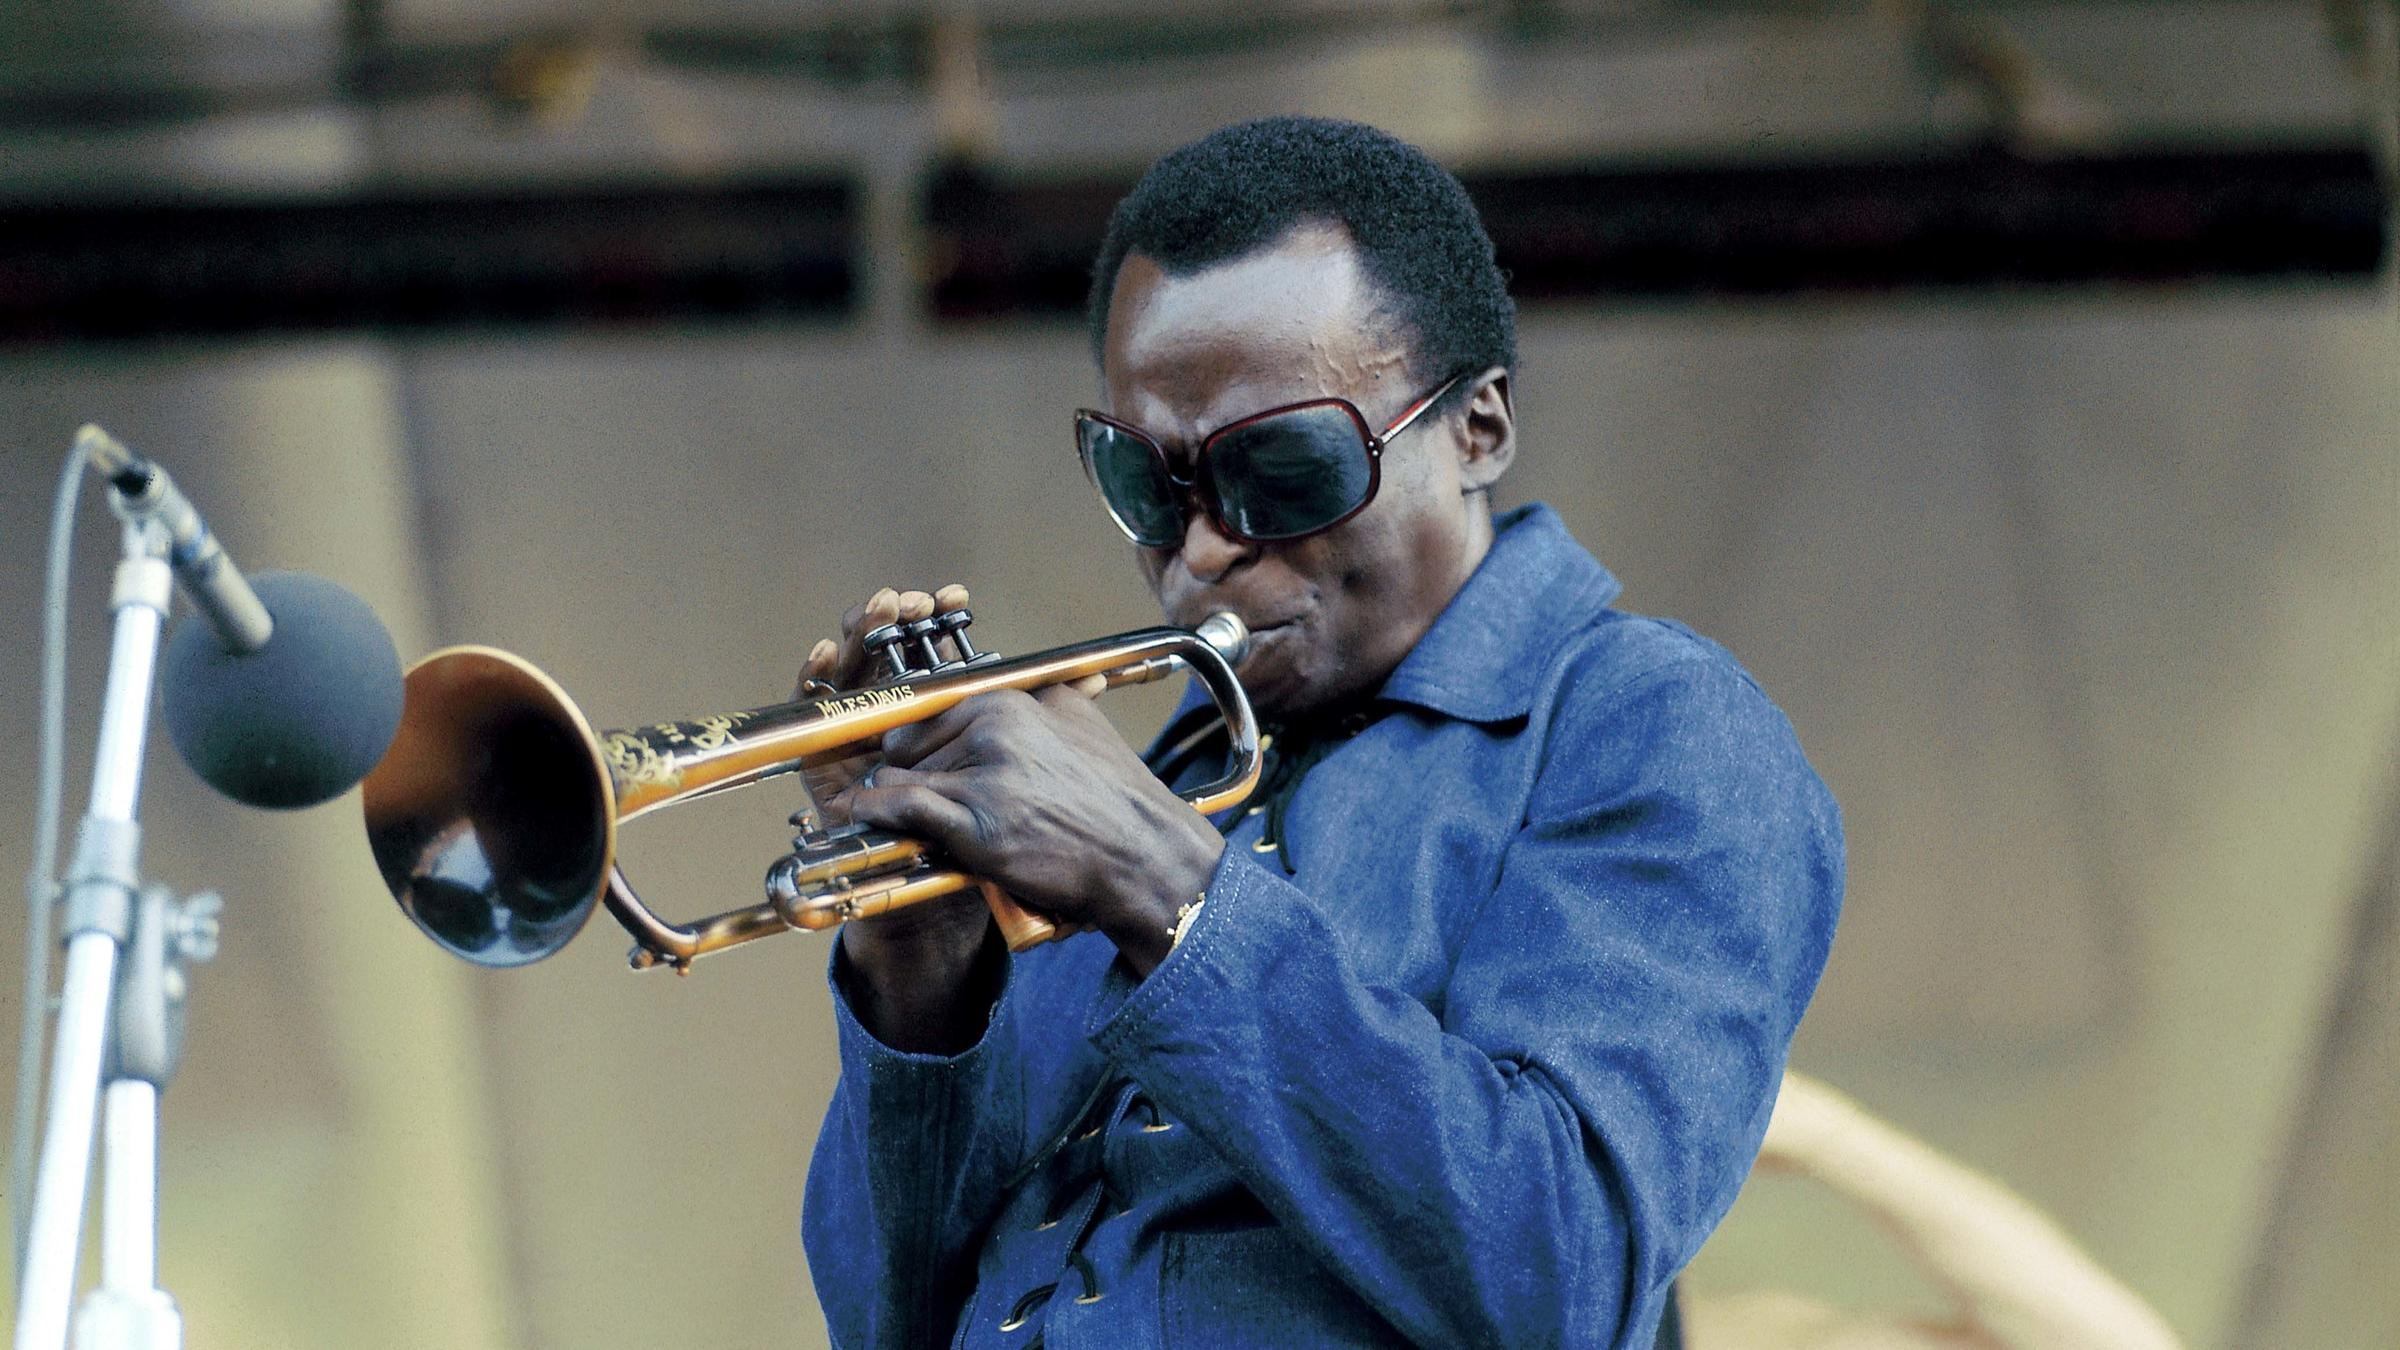 Looking Back On 'Bitches Brew': The Year Miles Davis Plugged Jazz ...